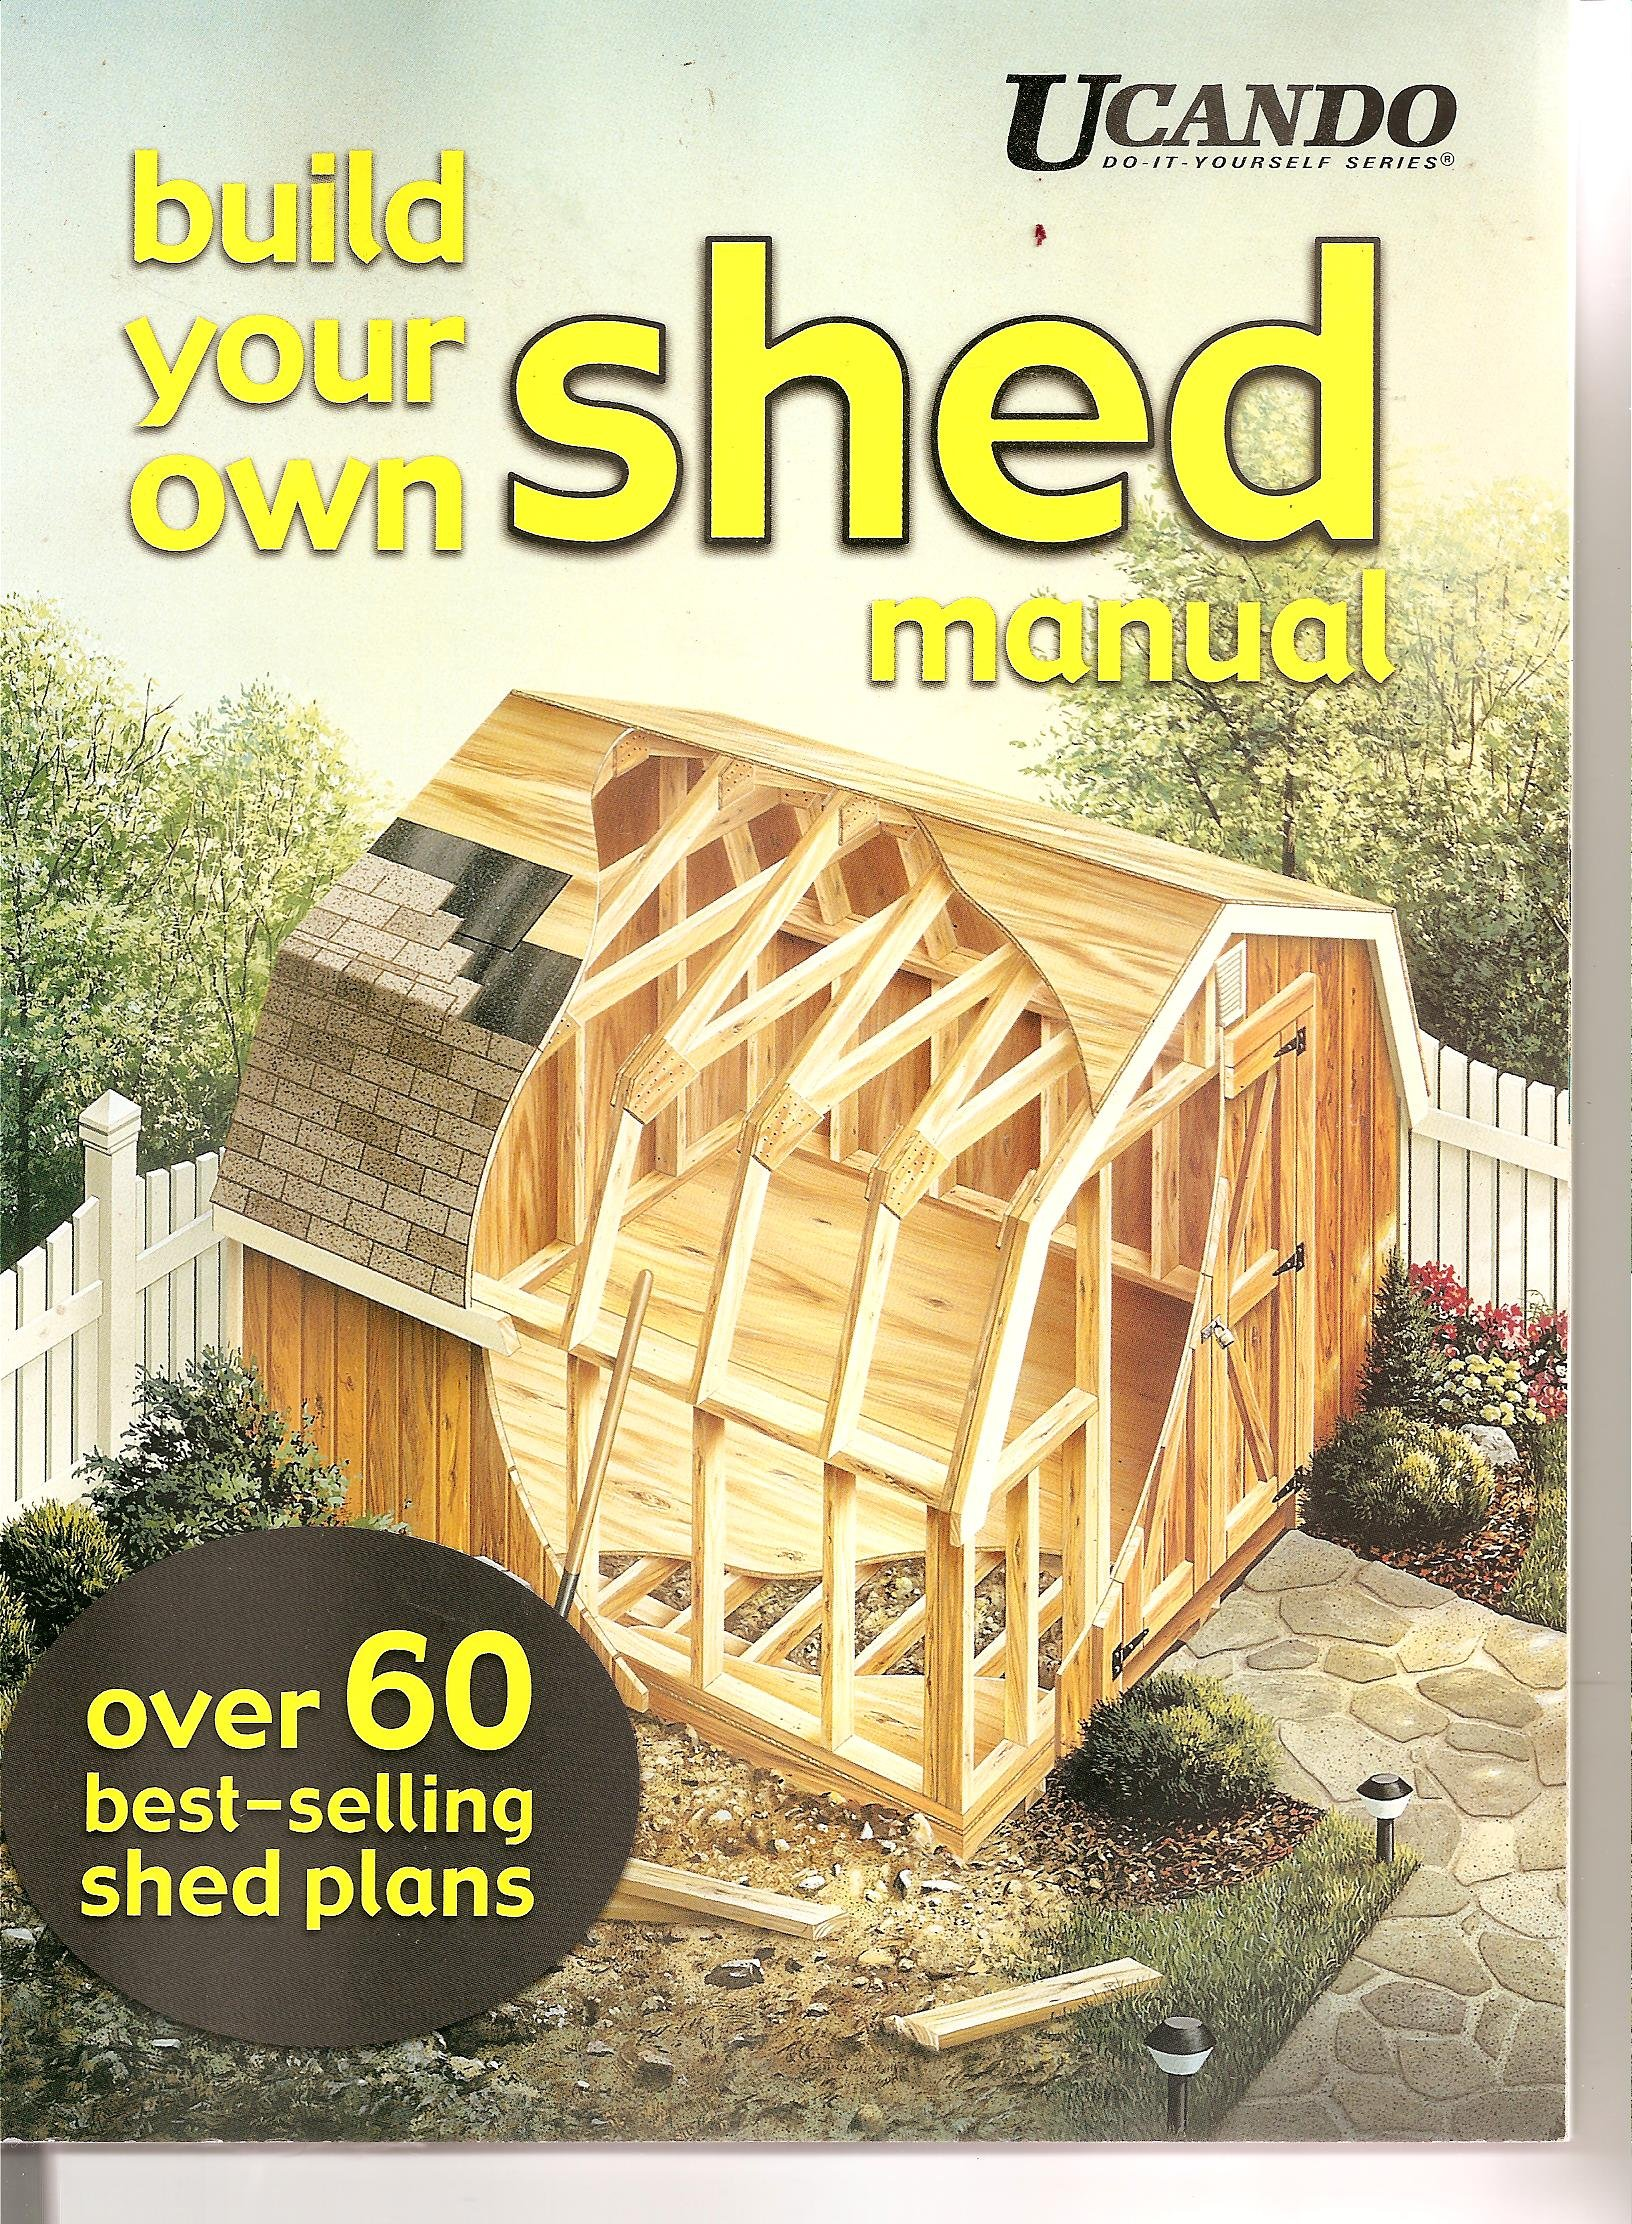 Build Your Own Shed Manual Hda Inc 9780934039475 Amazon Com Books